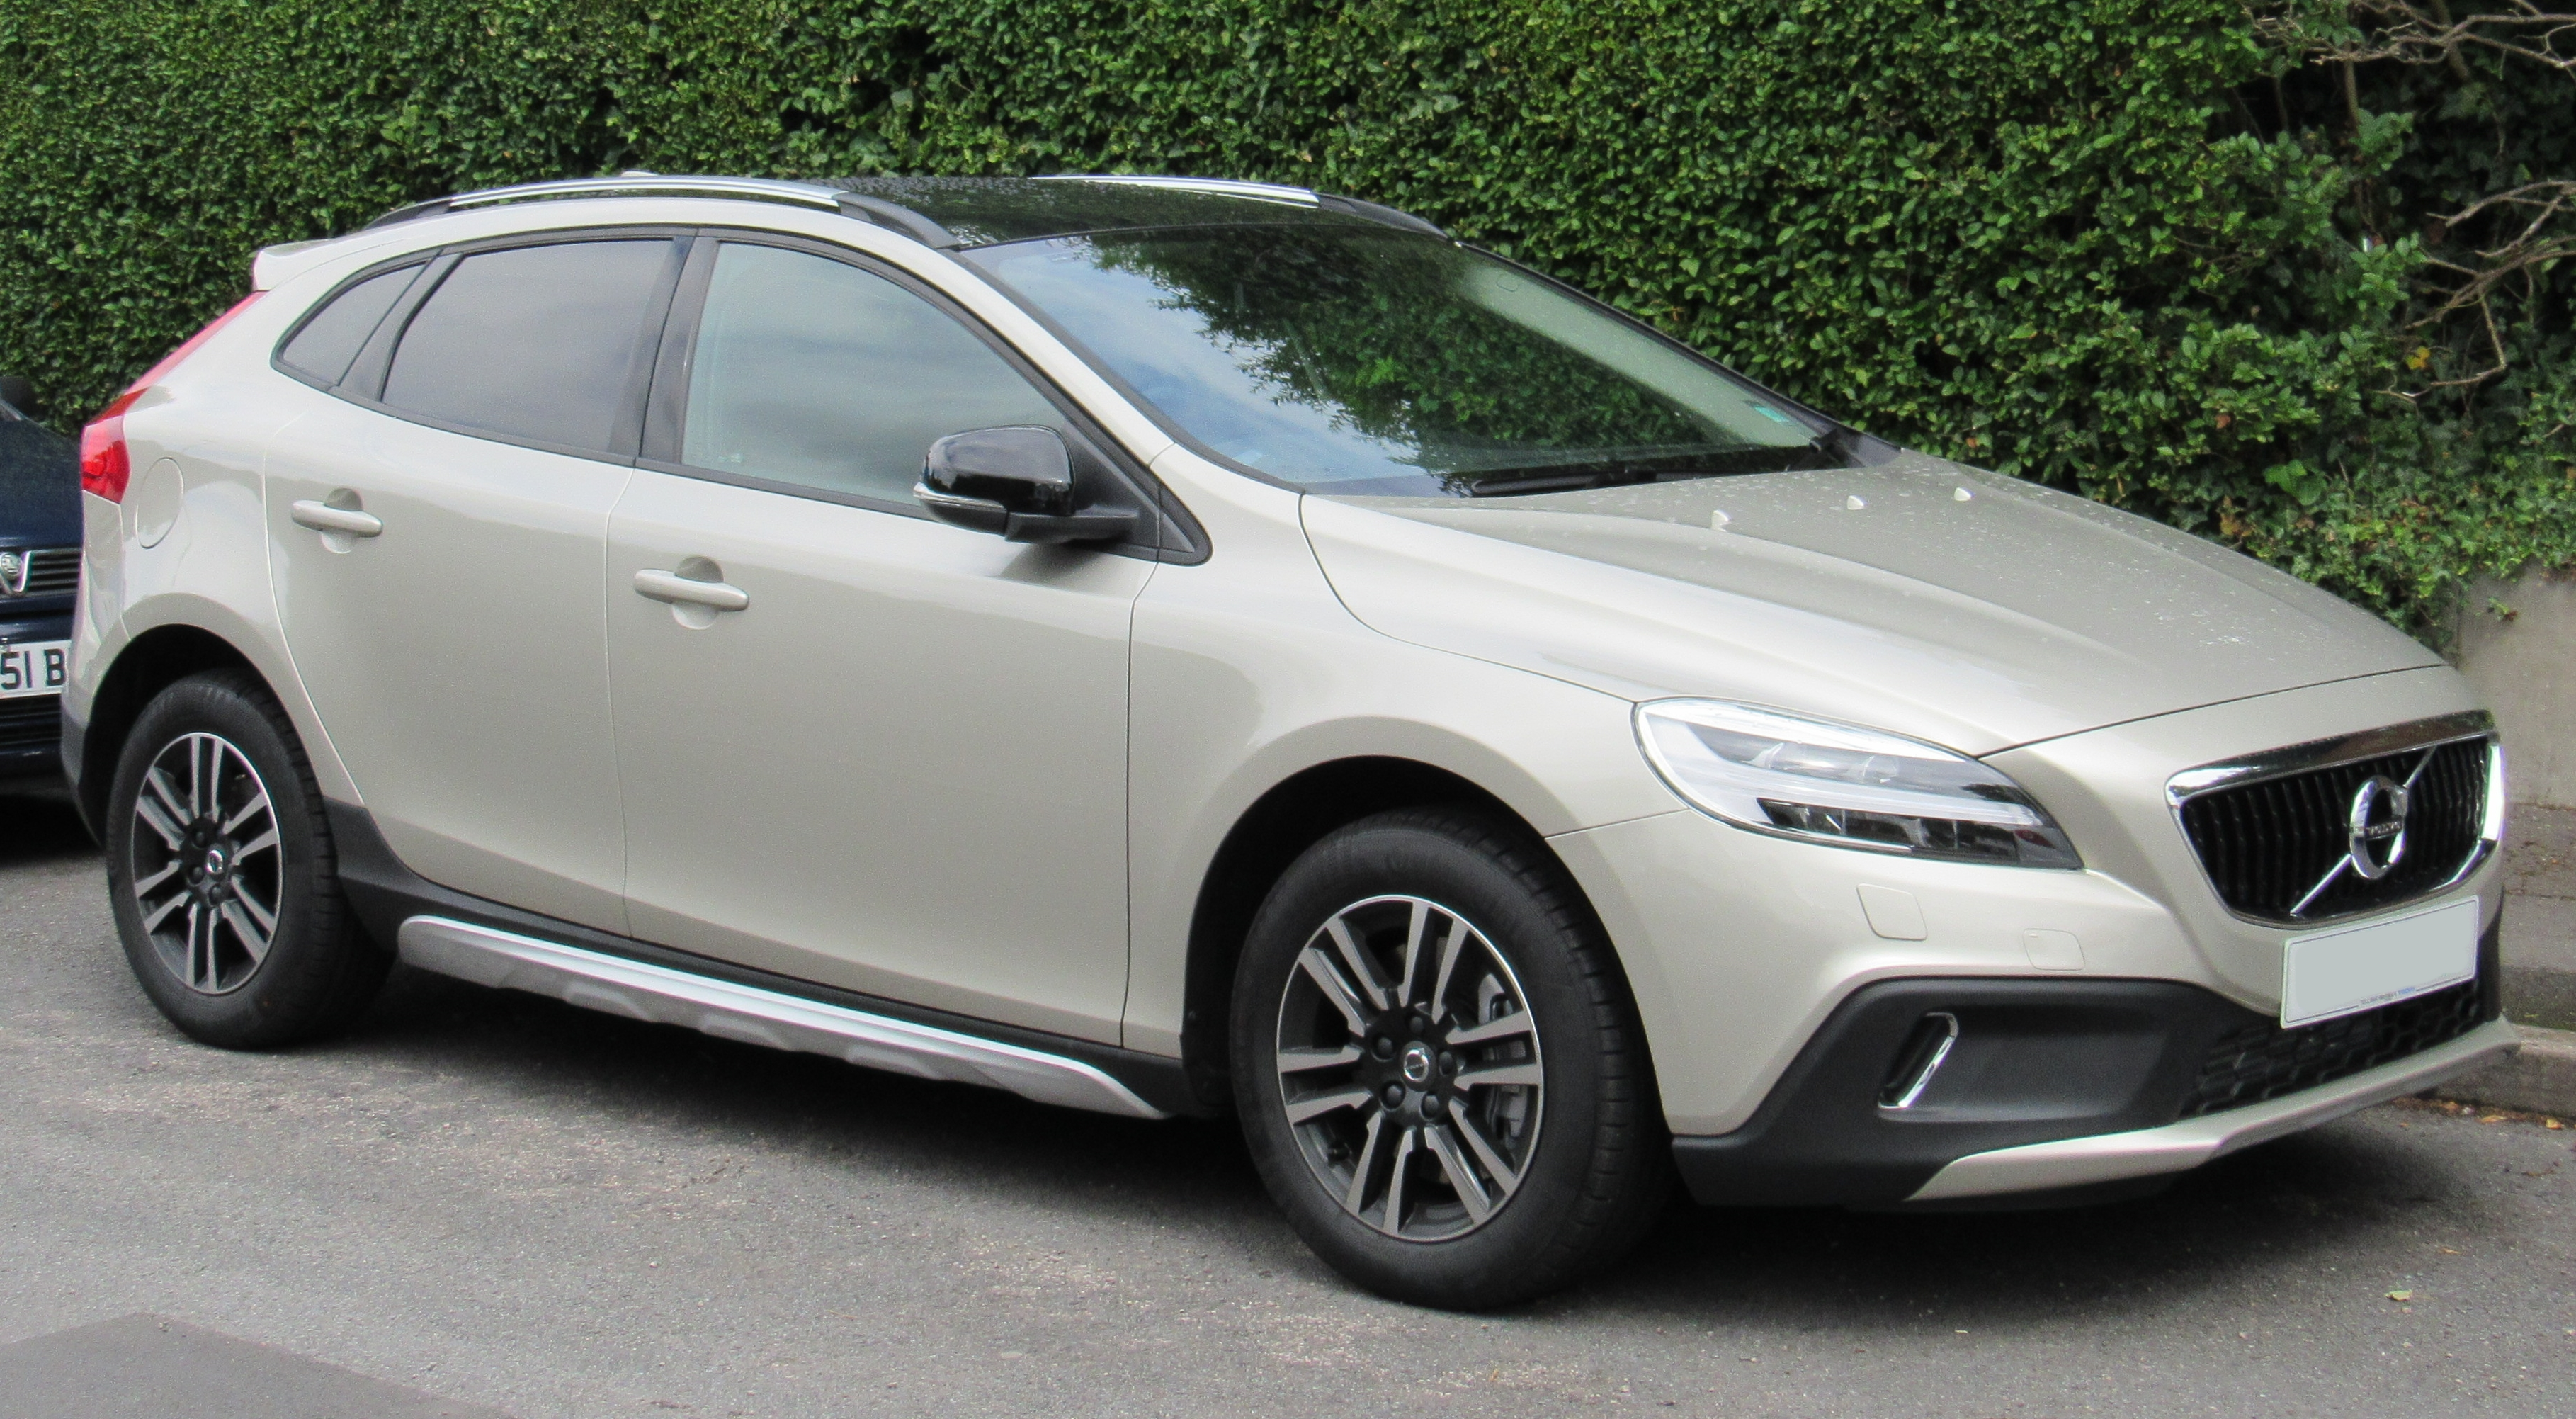 File:2017 Volvo V40 Cross Country 2.0 Front.jpg